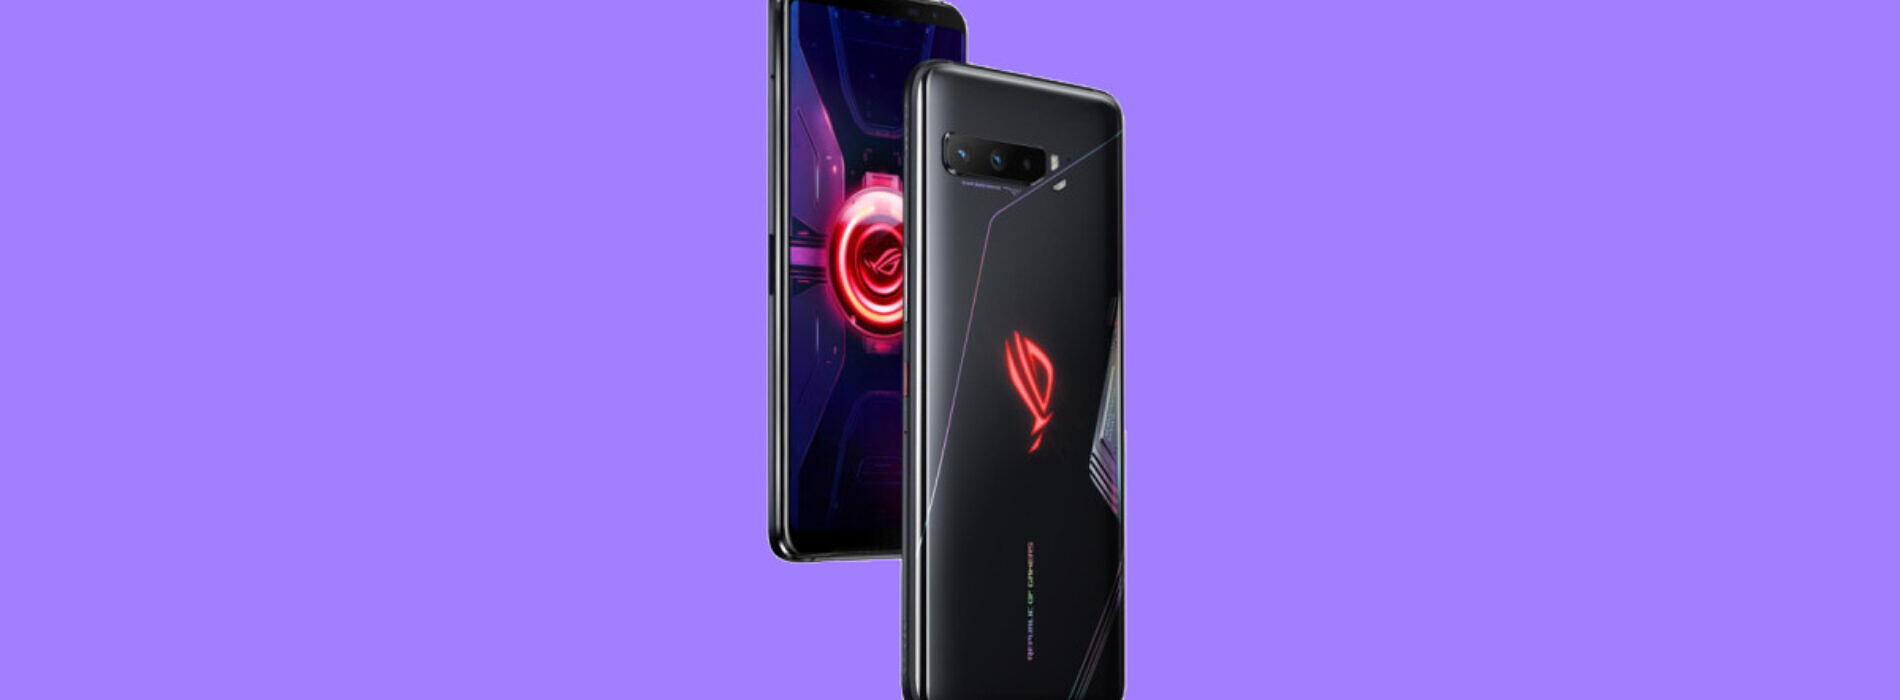 ASUS is sending the ROG Phone 3 to custom ROM developers from LineageOS, Paranoid Android, Dirty Unicorns, and others